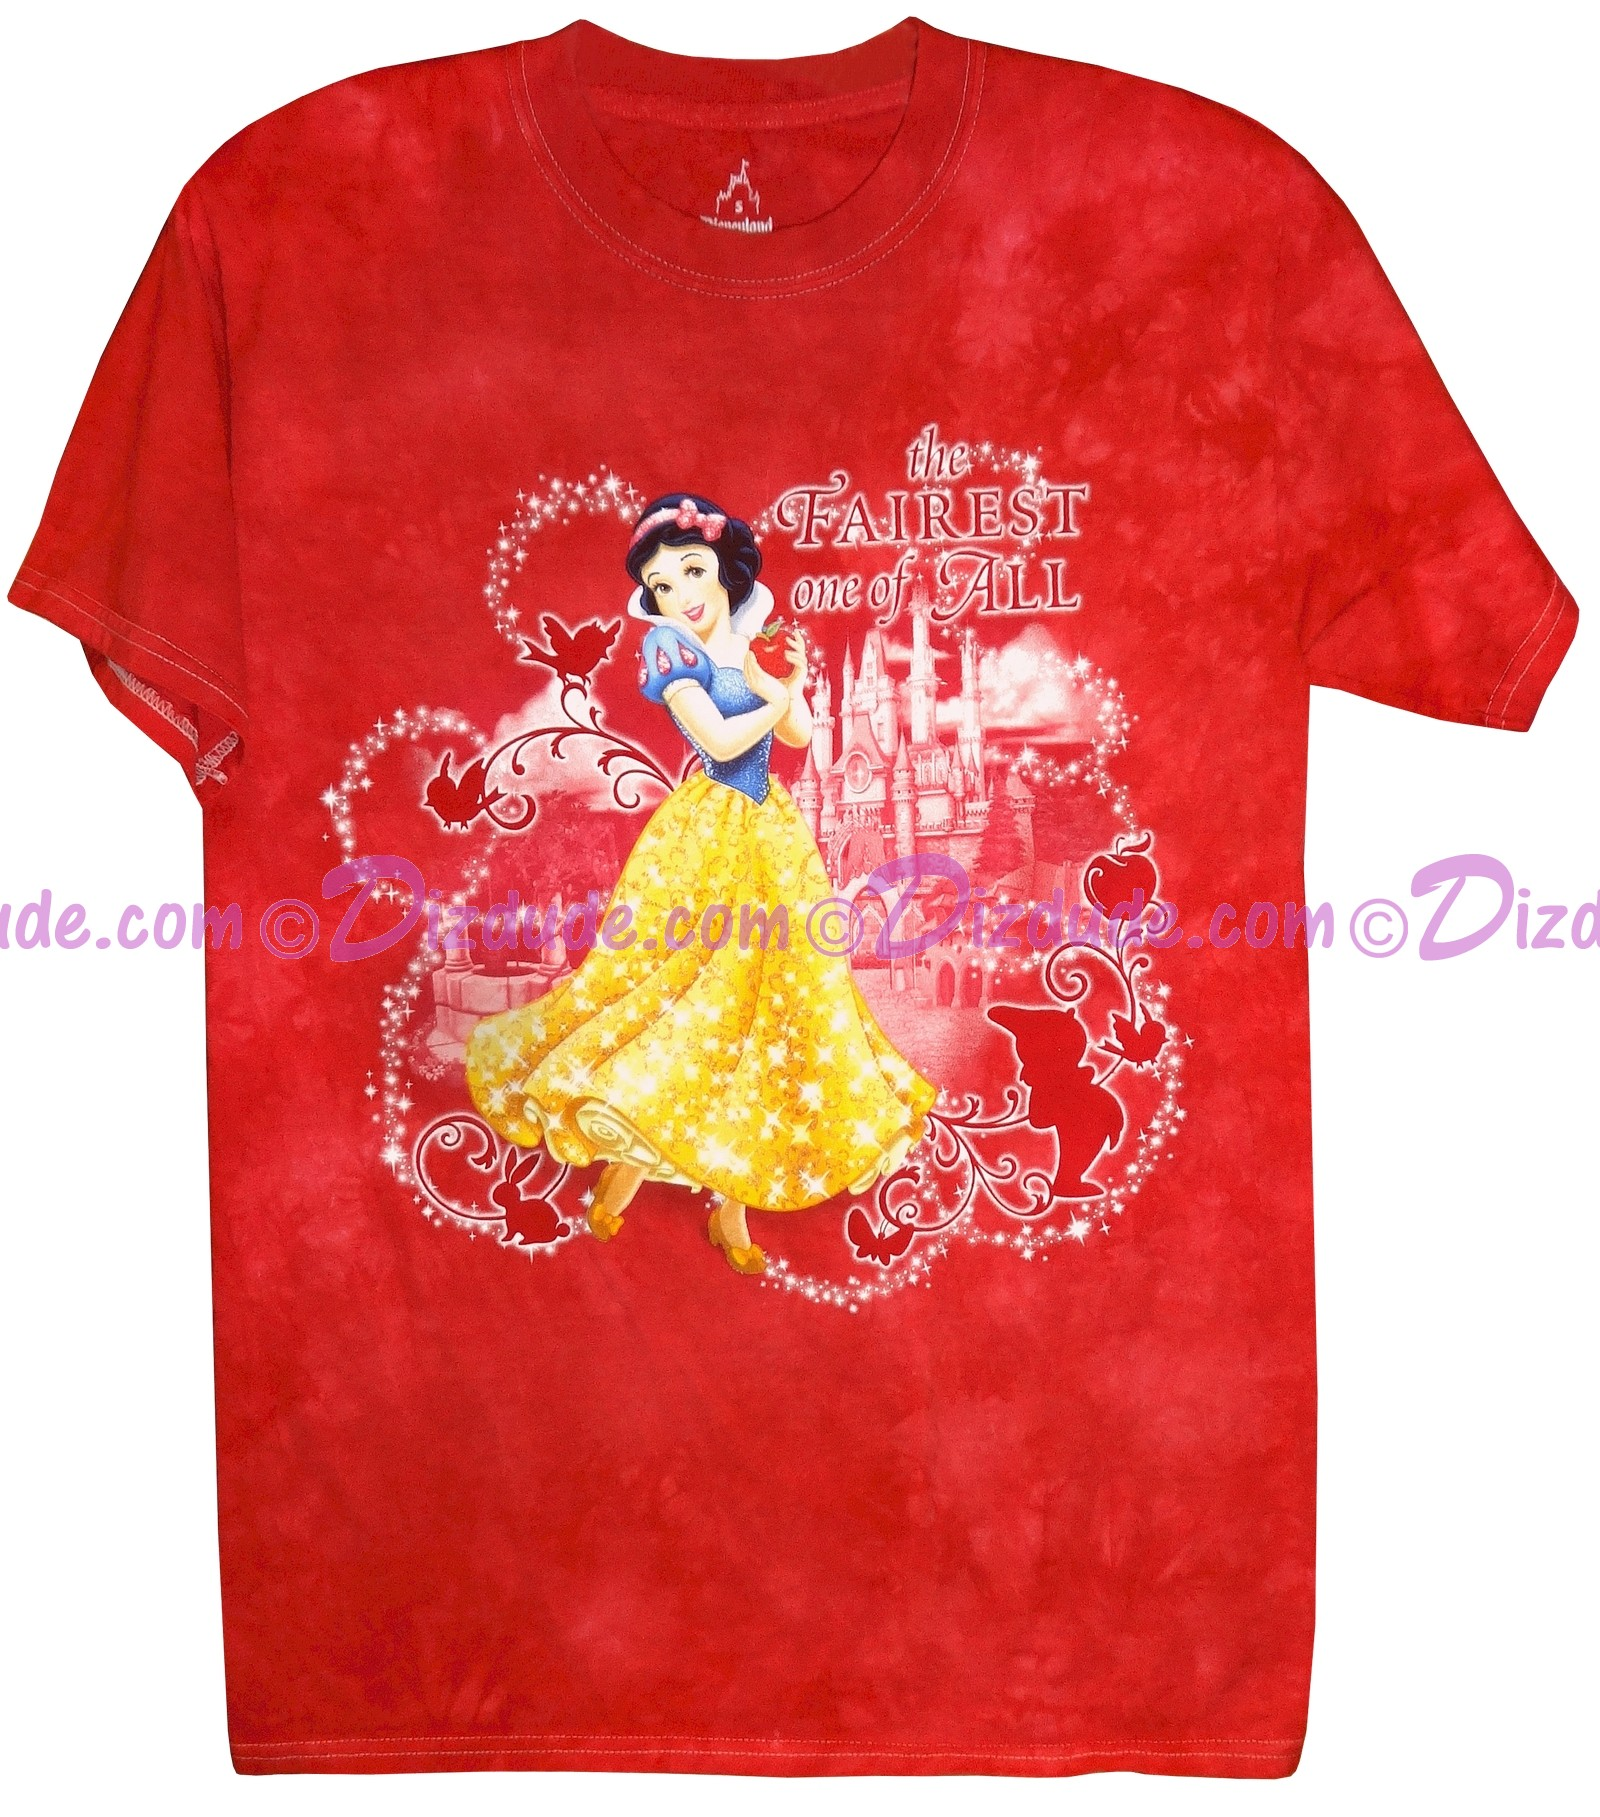 """(SOLD OUT) Disney Princess Snow White """"The FAIREST one of ALL"""" Ladies T-shirt (Tee, Tshirt or T shirt)"""